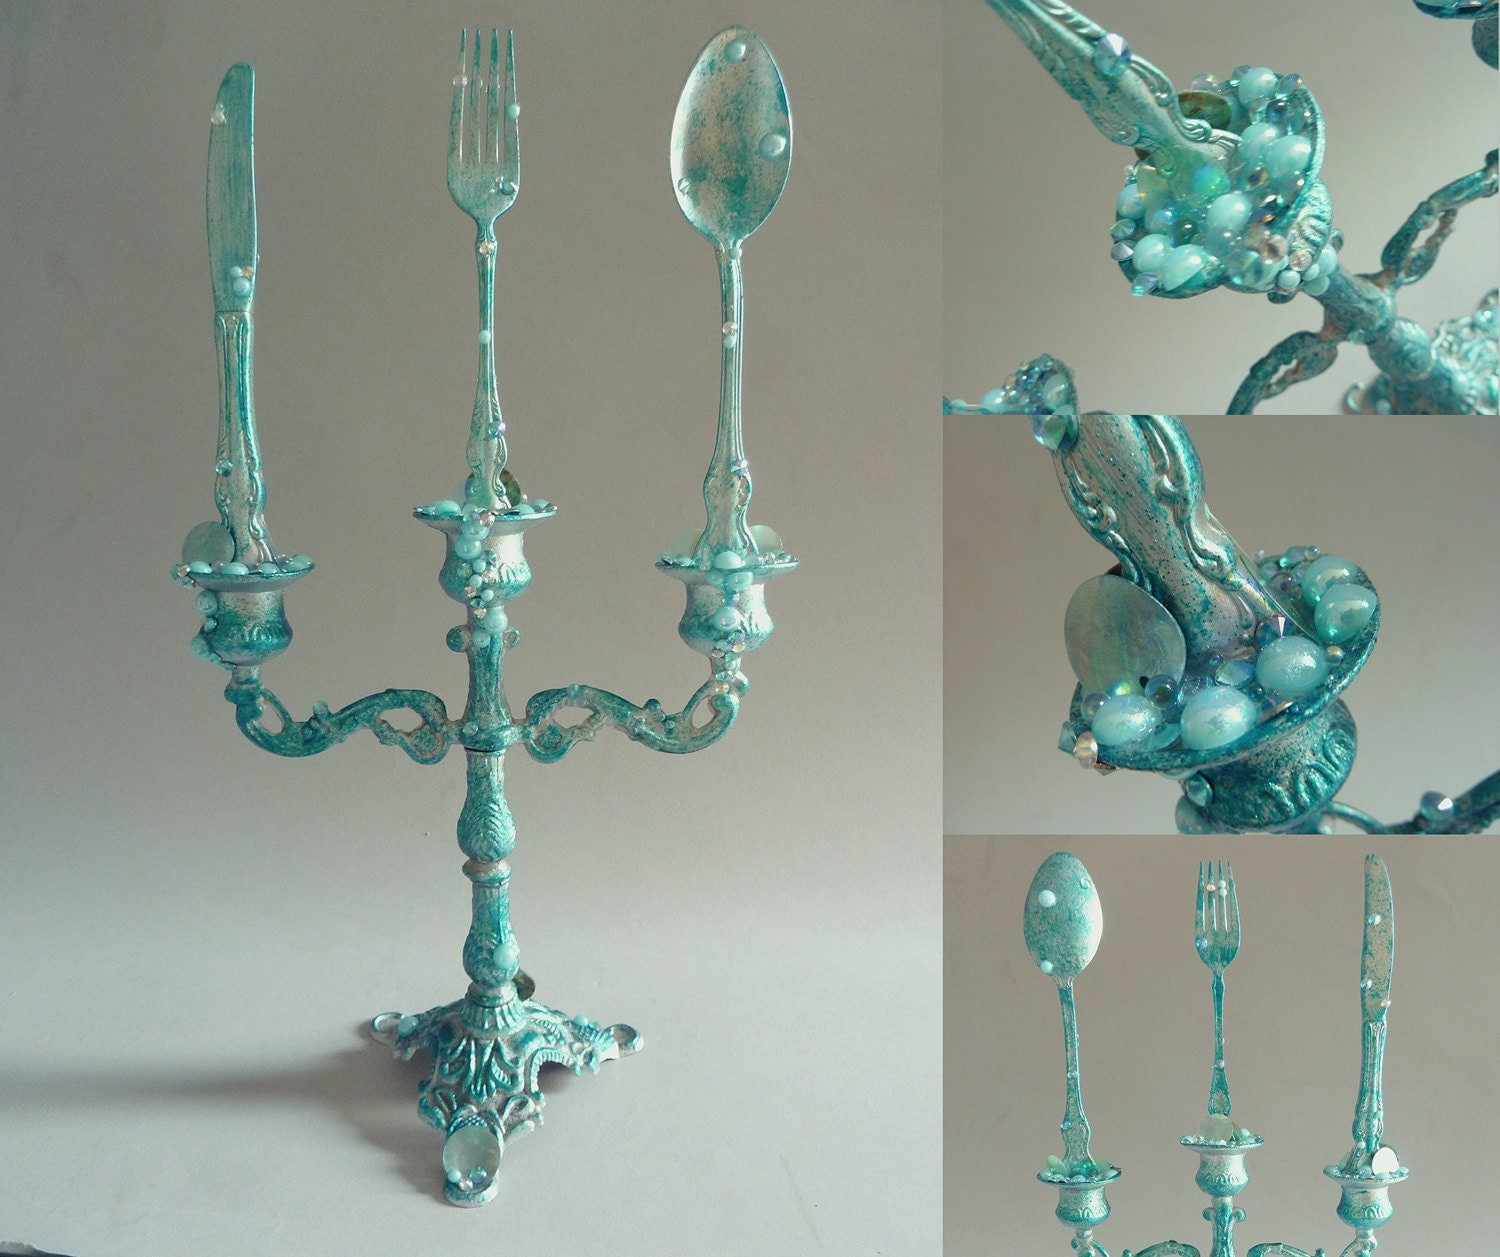 Diy Candelabra: The Little Mermaid Candelabra With Dinglehopper